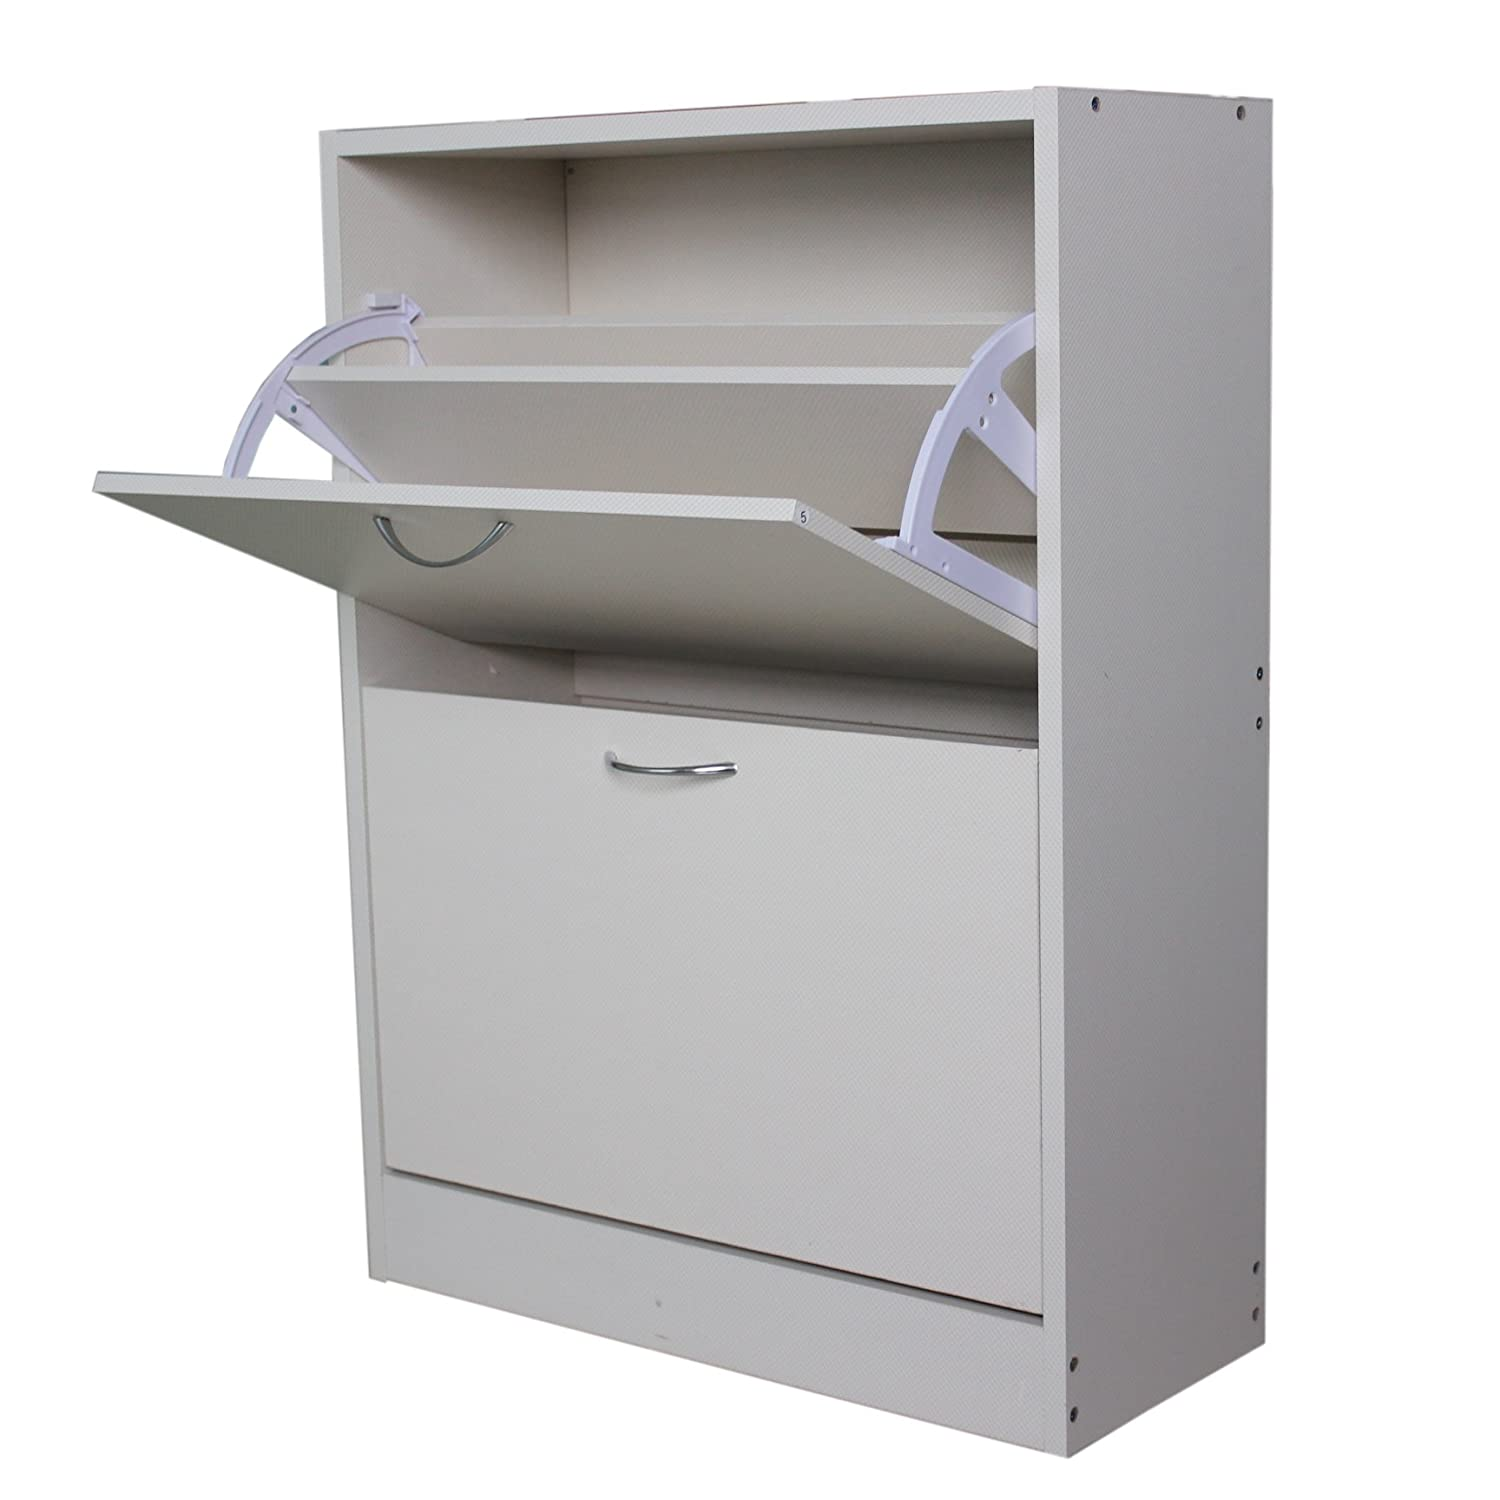 WestWood Wooden Shoe Storage Cabinet 2 Drawer Footwear Stand Rack Unit Cupboard Furniture Organizer White New KMS